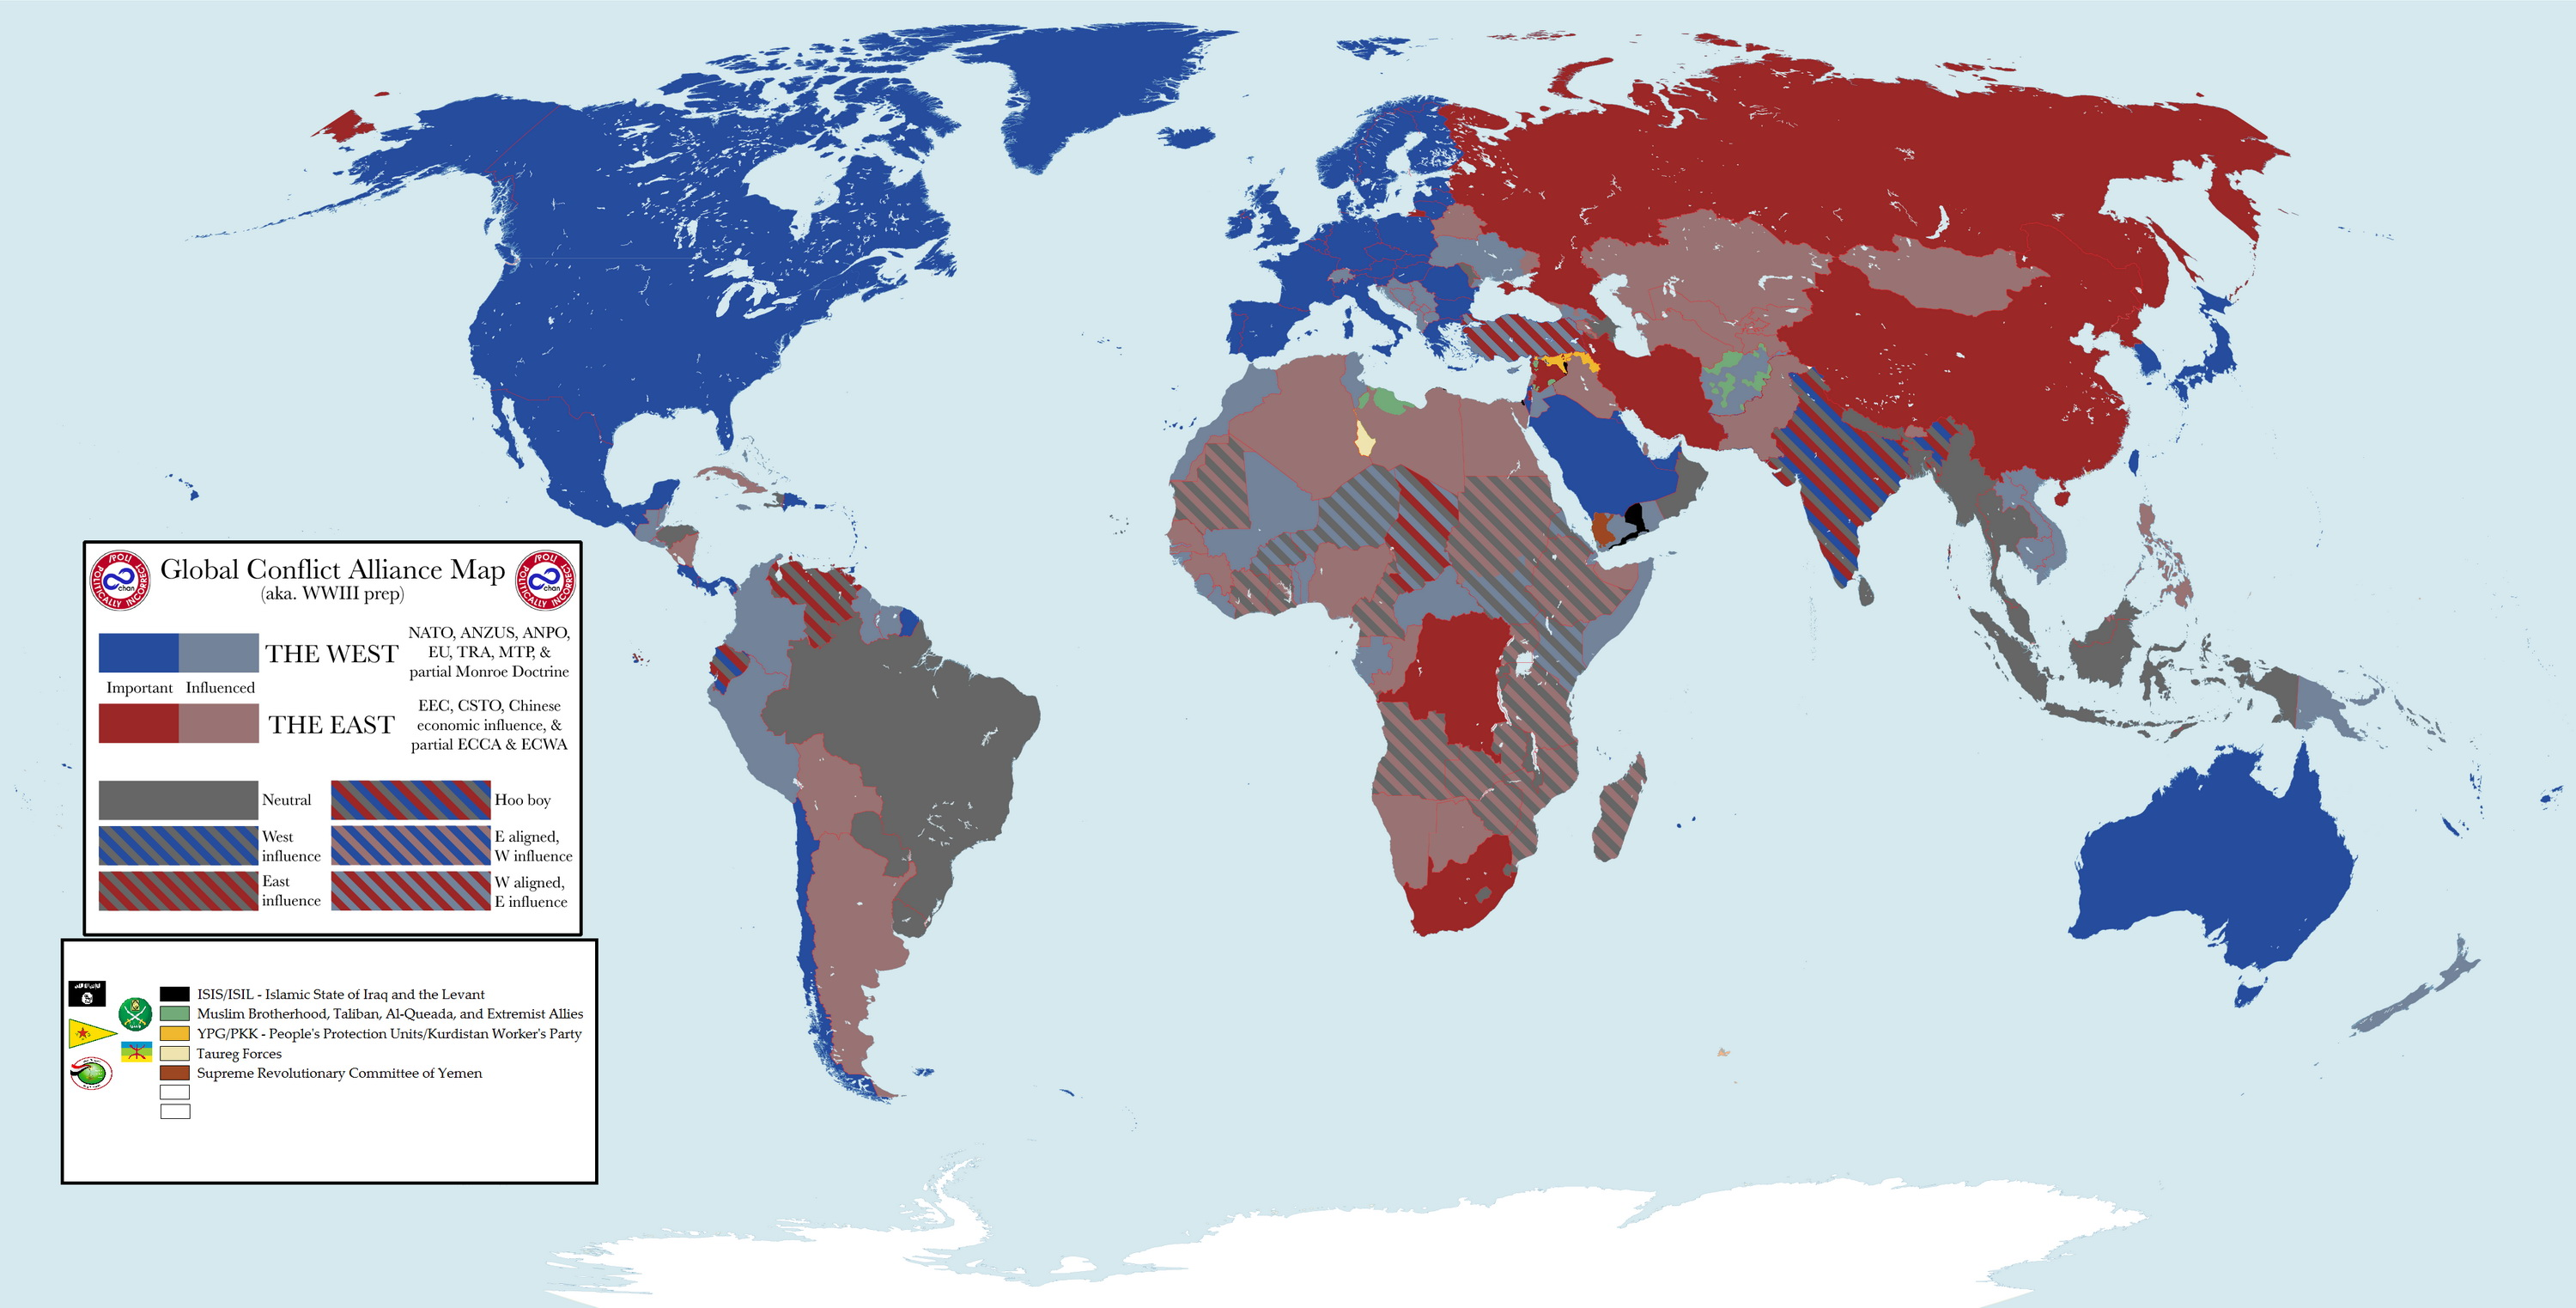 Current military alliances in the world